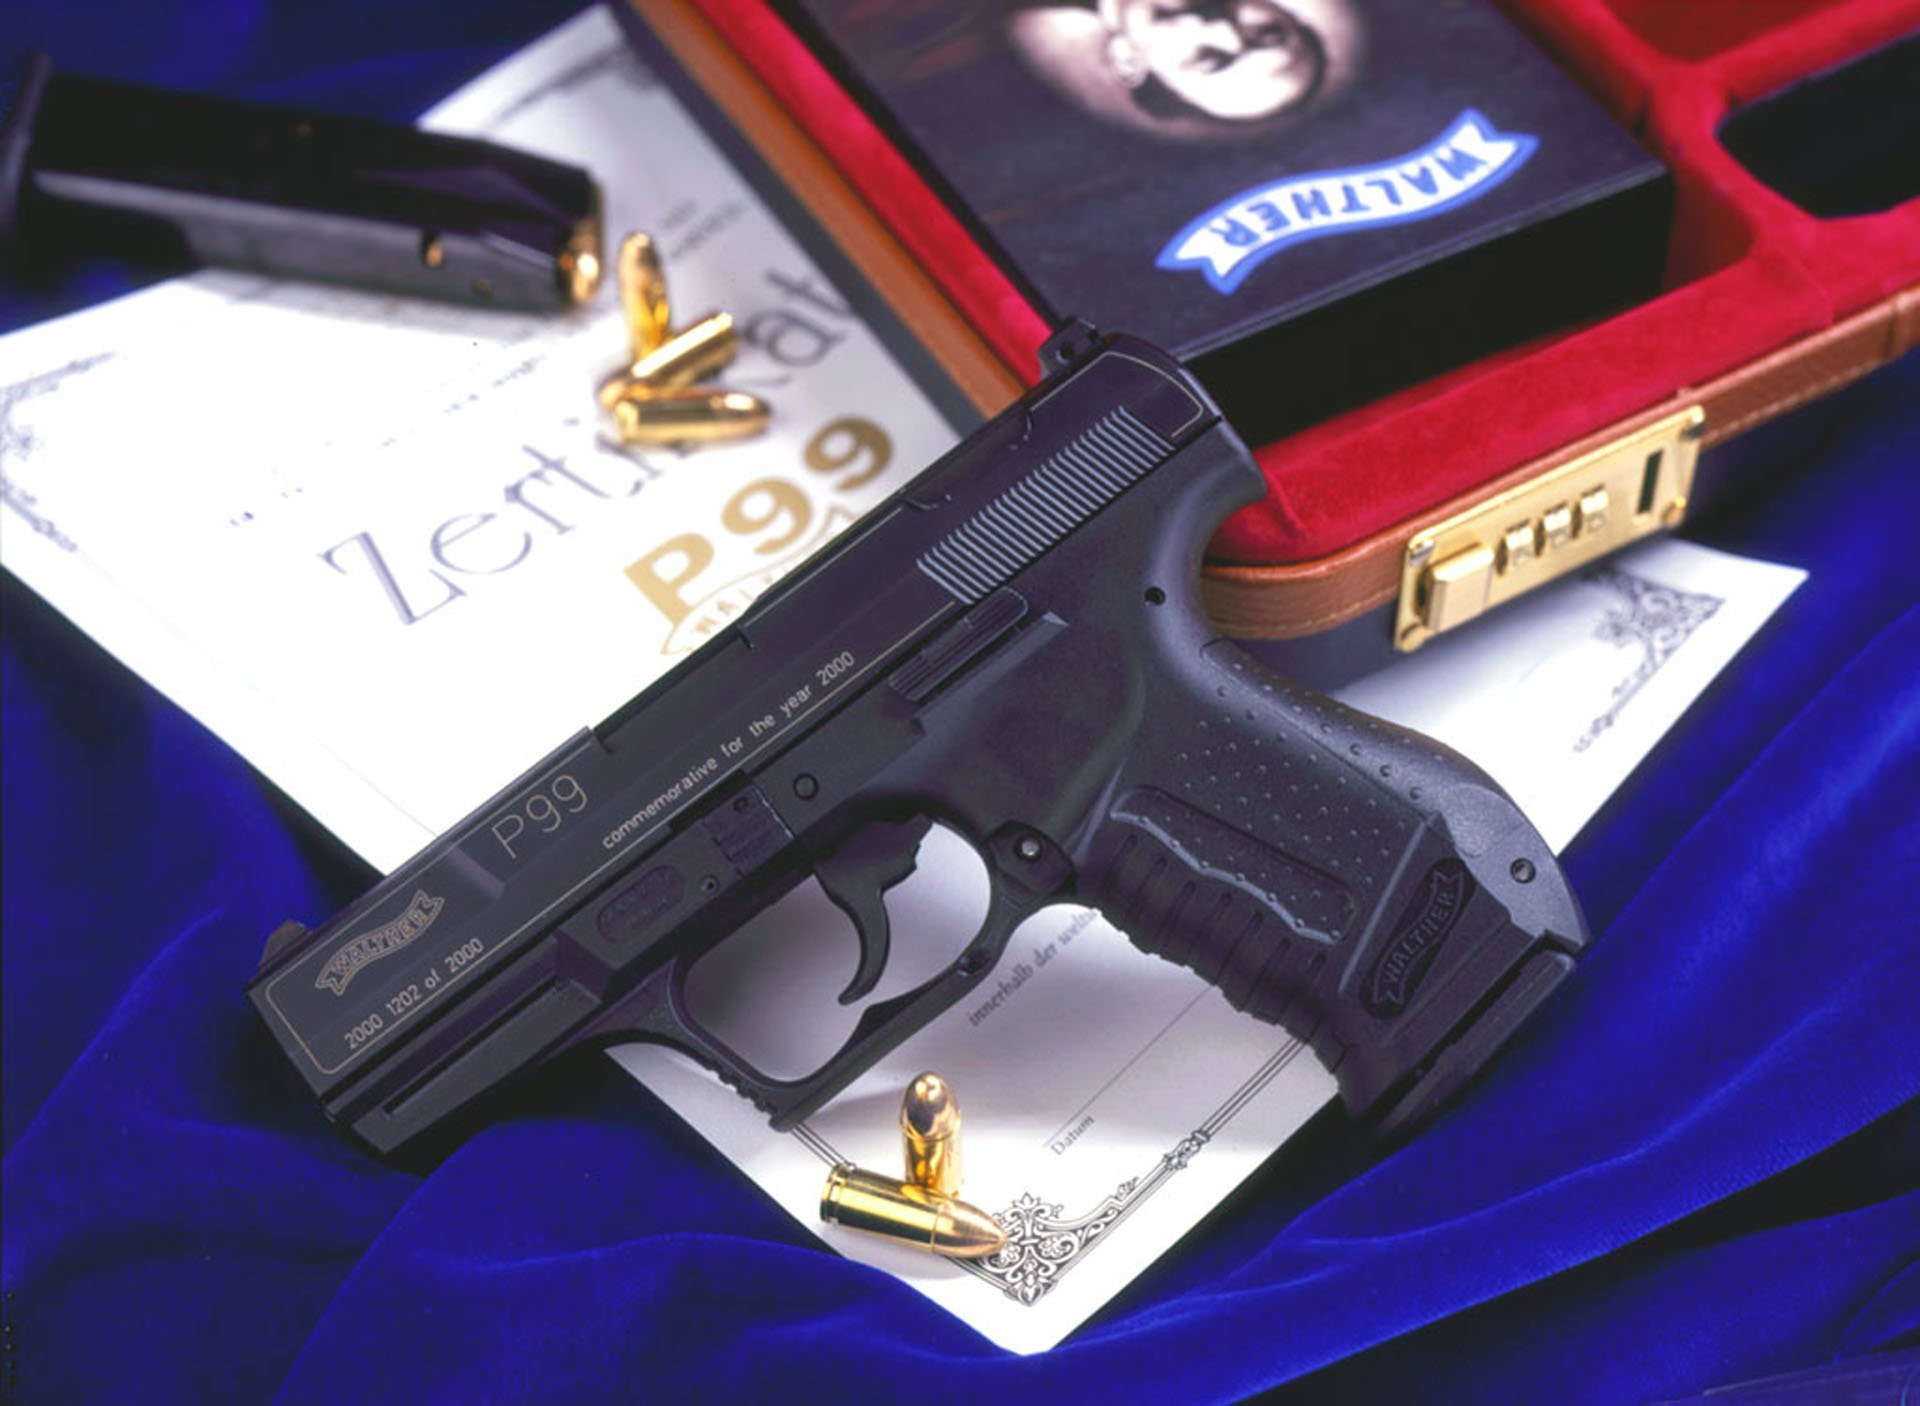 Walther P99 Pistol HD Wallpaper Background Image 1920x1406 1920x1406